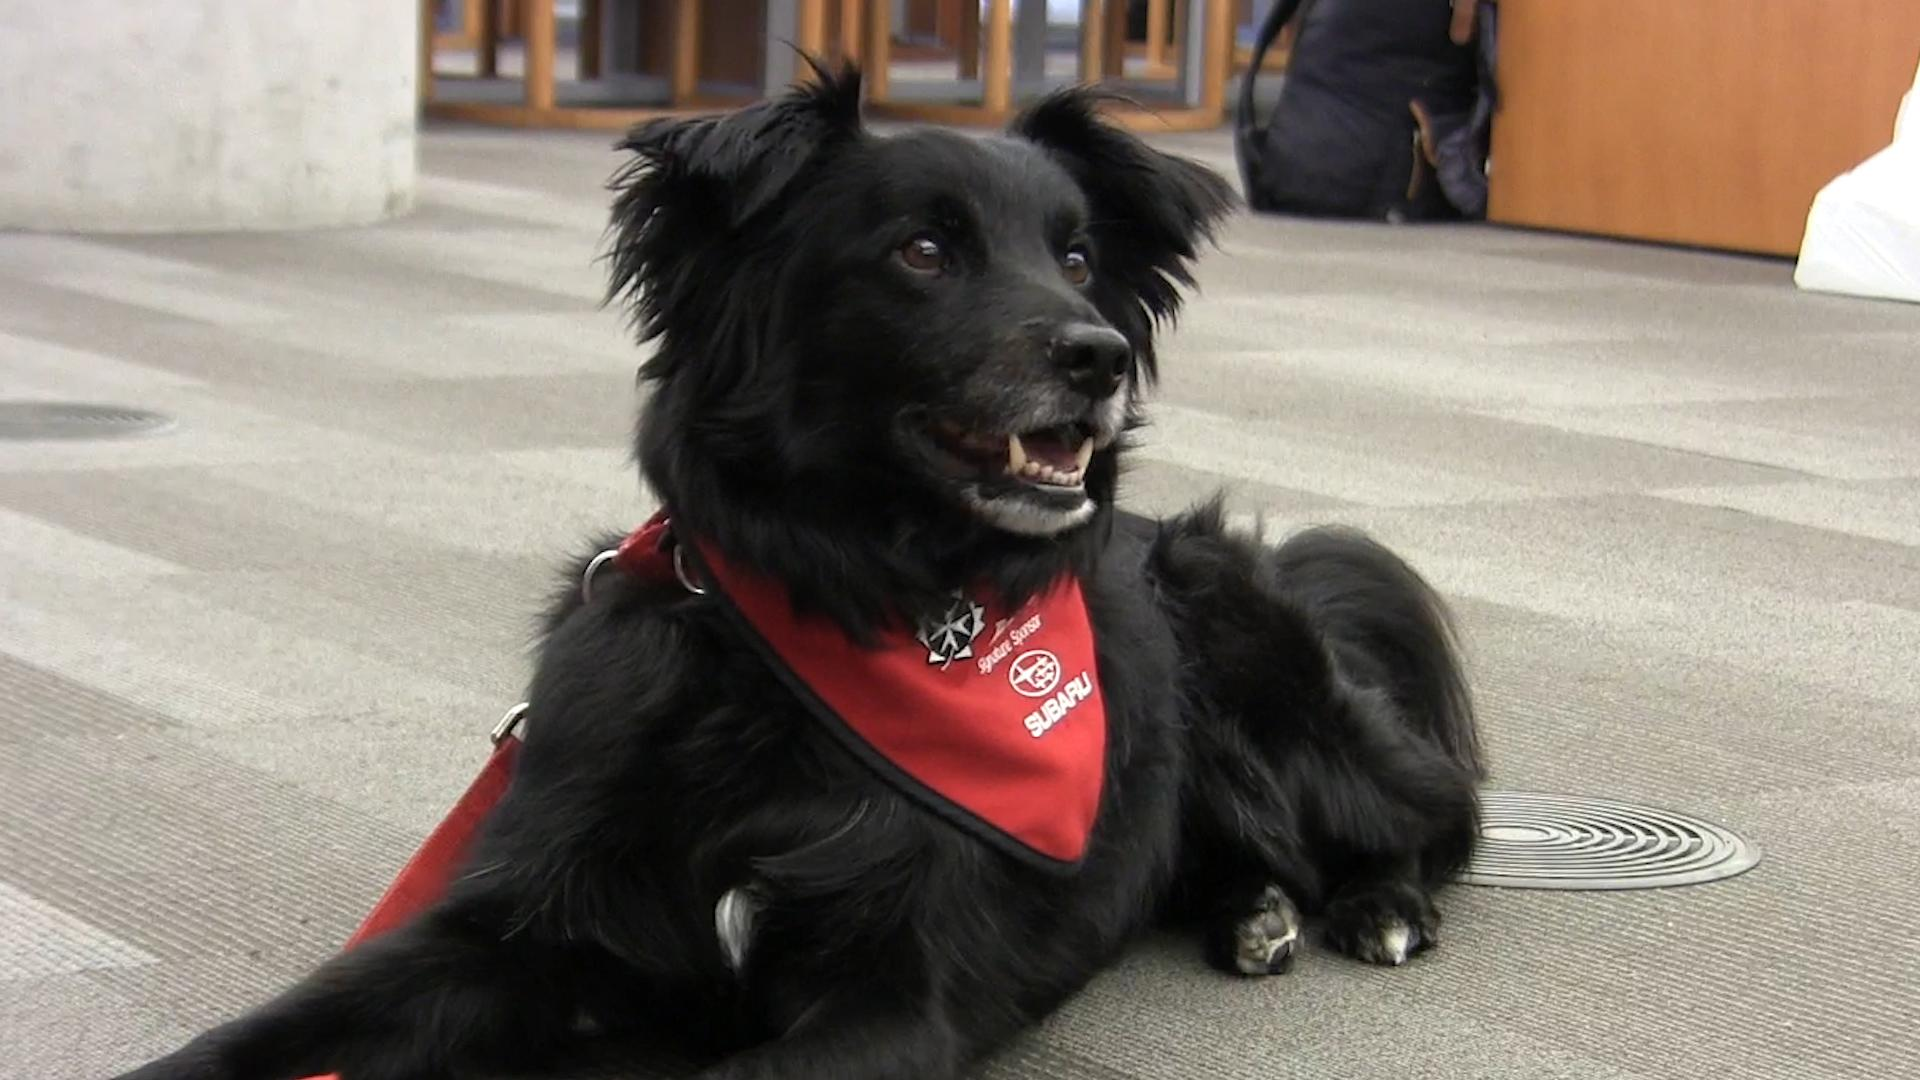 Therapy dogs the newest items to borrow at library